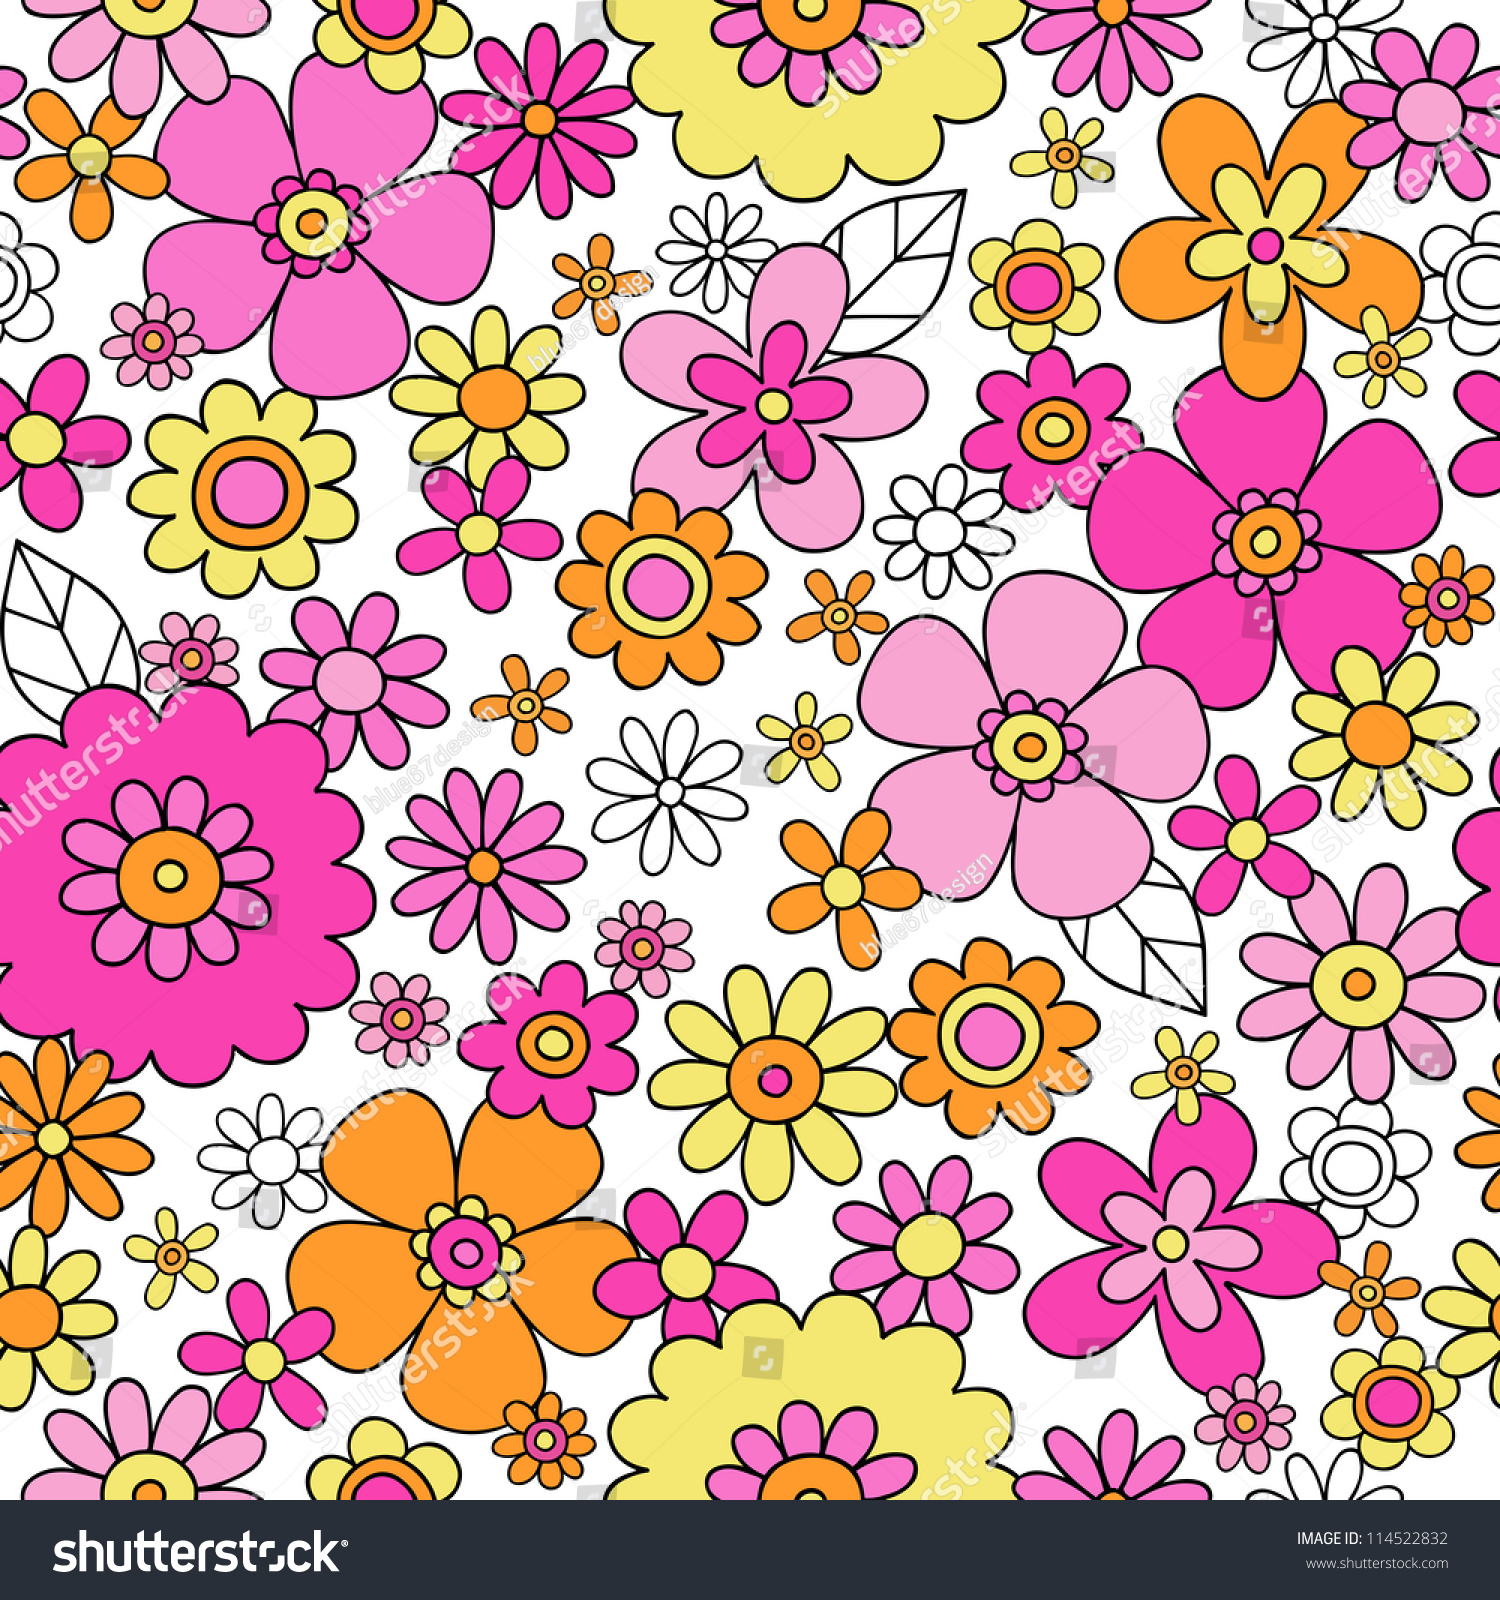 Groovy Flower Backgrounds | Collection 9+ Wallpapers